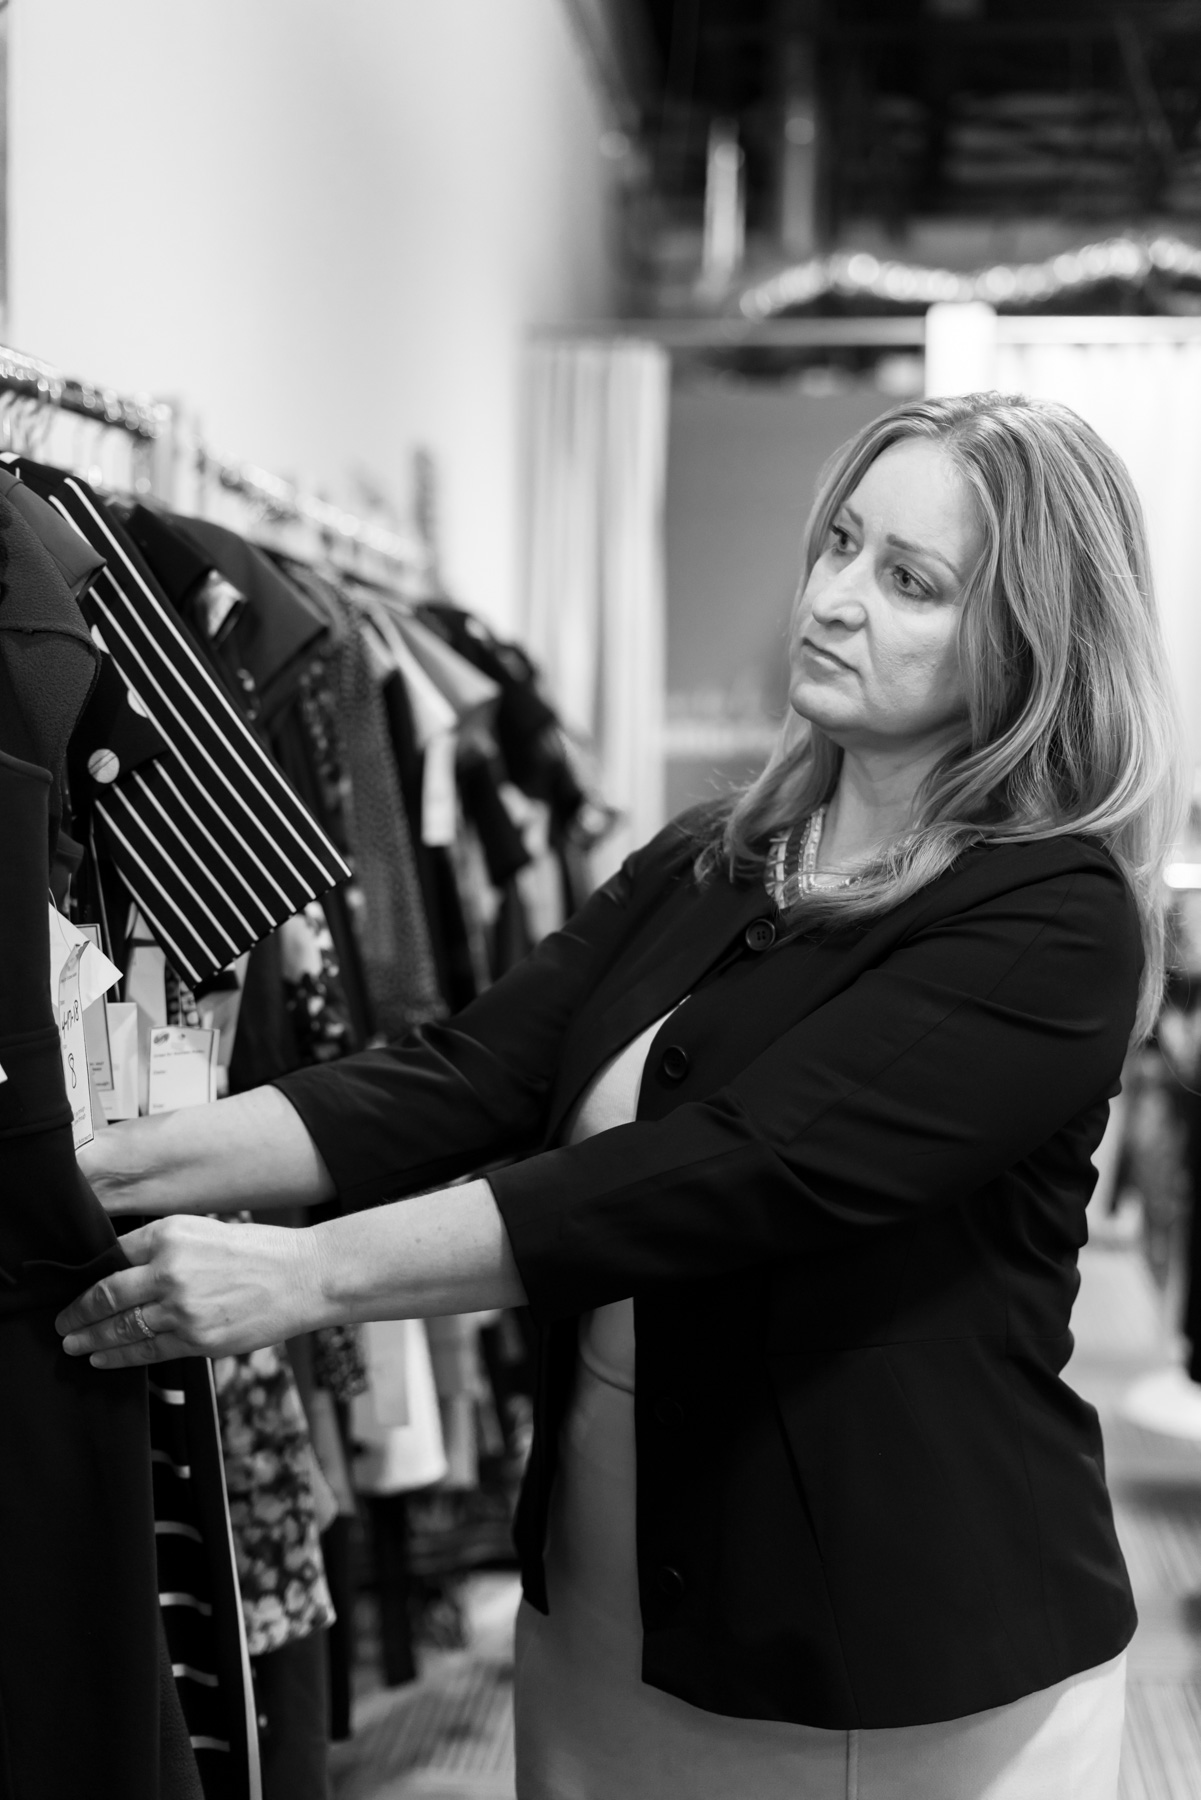 """Dress For Success's main goal is to empower and inspire women to feel confident in themselves, especially economically. It is free to all women searching for employment and need extra help going through the process. """"The women are all different, all ages, all backgrounds, the one thing that they do have in common is that they hit a bump in the road. There are so many different challenges or barriers, homelessness, an ill family member, a domestic violence situation, a mental health issue, and affordable housing. I feel like the two biggest things for our clients are affordable housing and some sort of emotional or mental issue, and they're unable to get affordable help for that."""""""